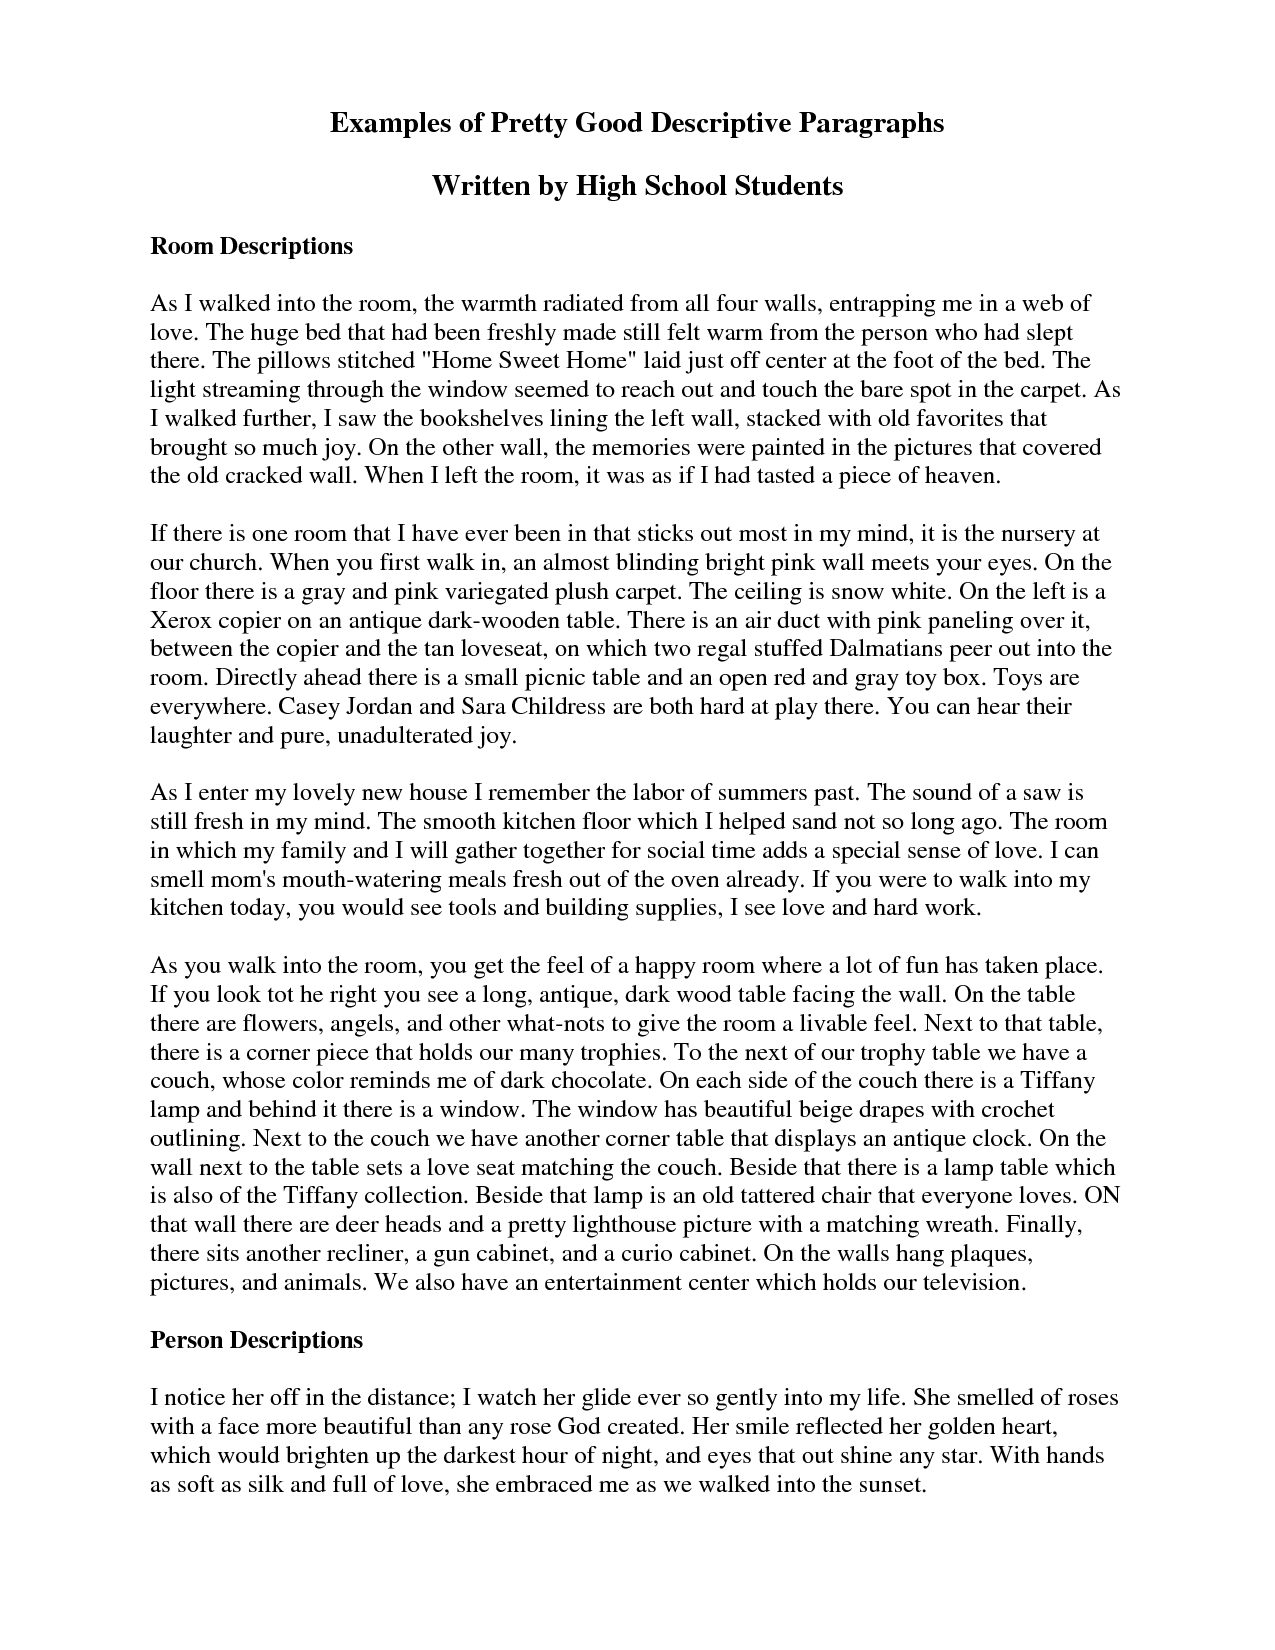 Descriptive Essay Help What Is A Descriptive Essay Answers Writing Tips And 100 Examples Of